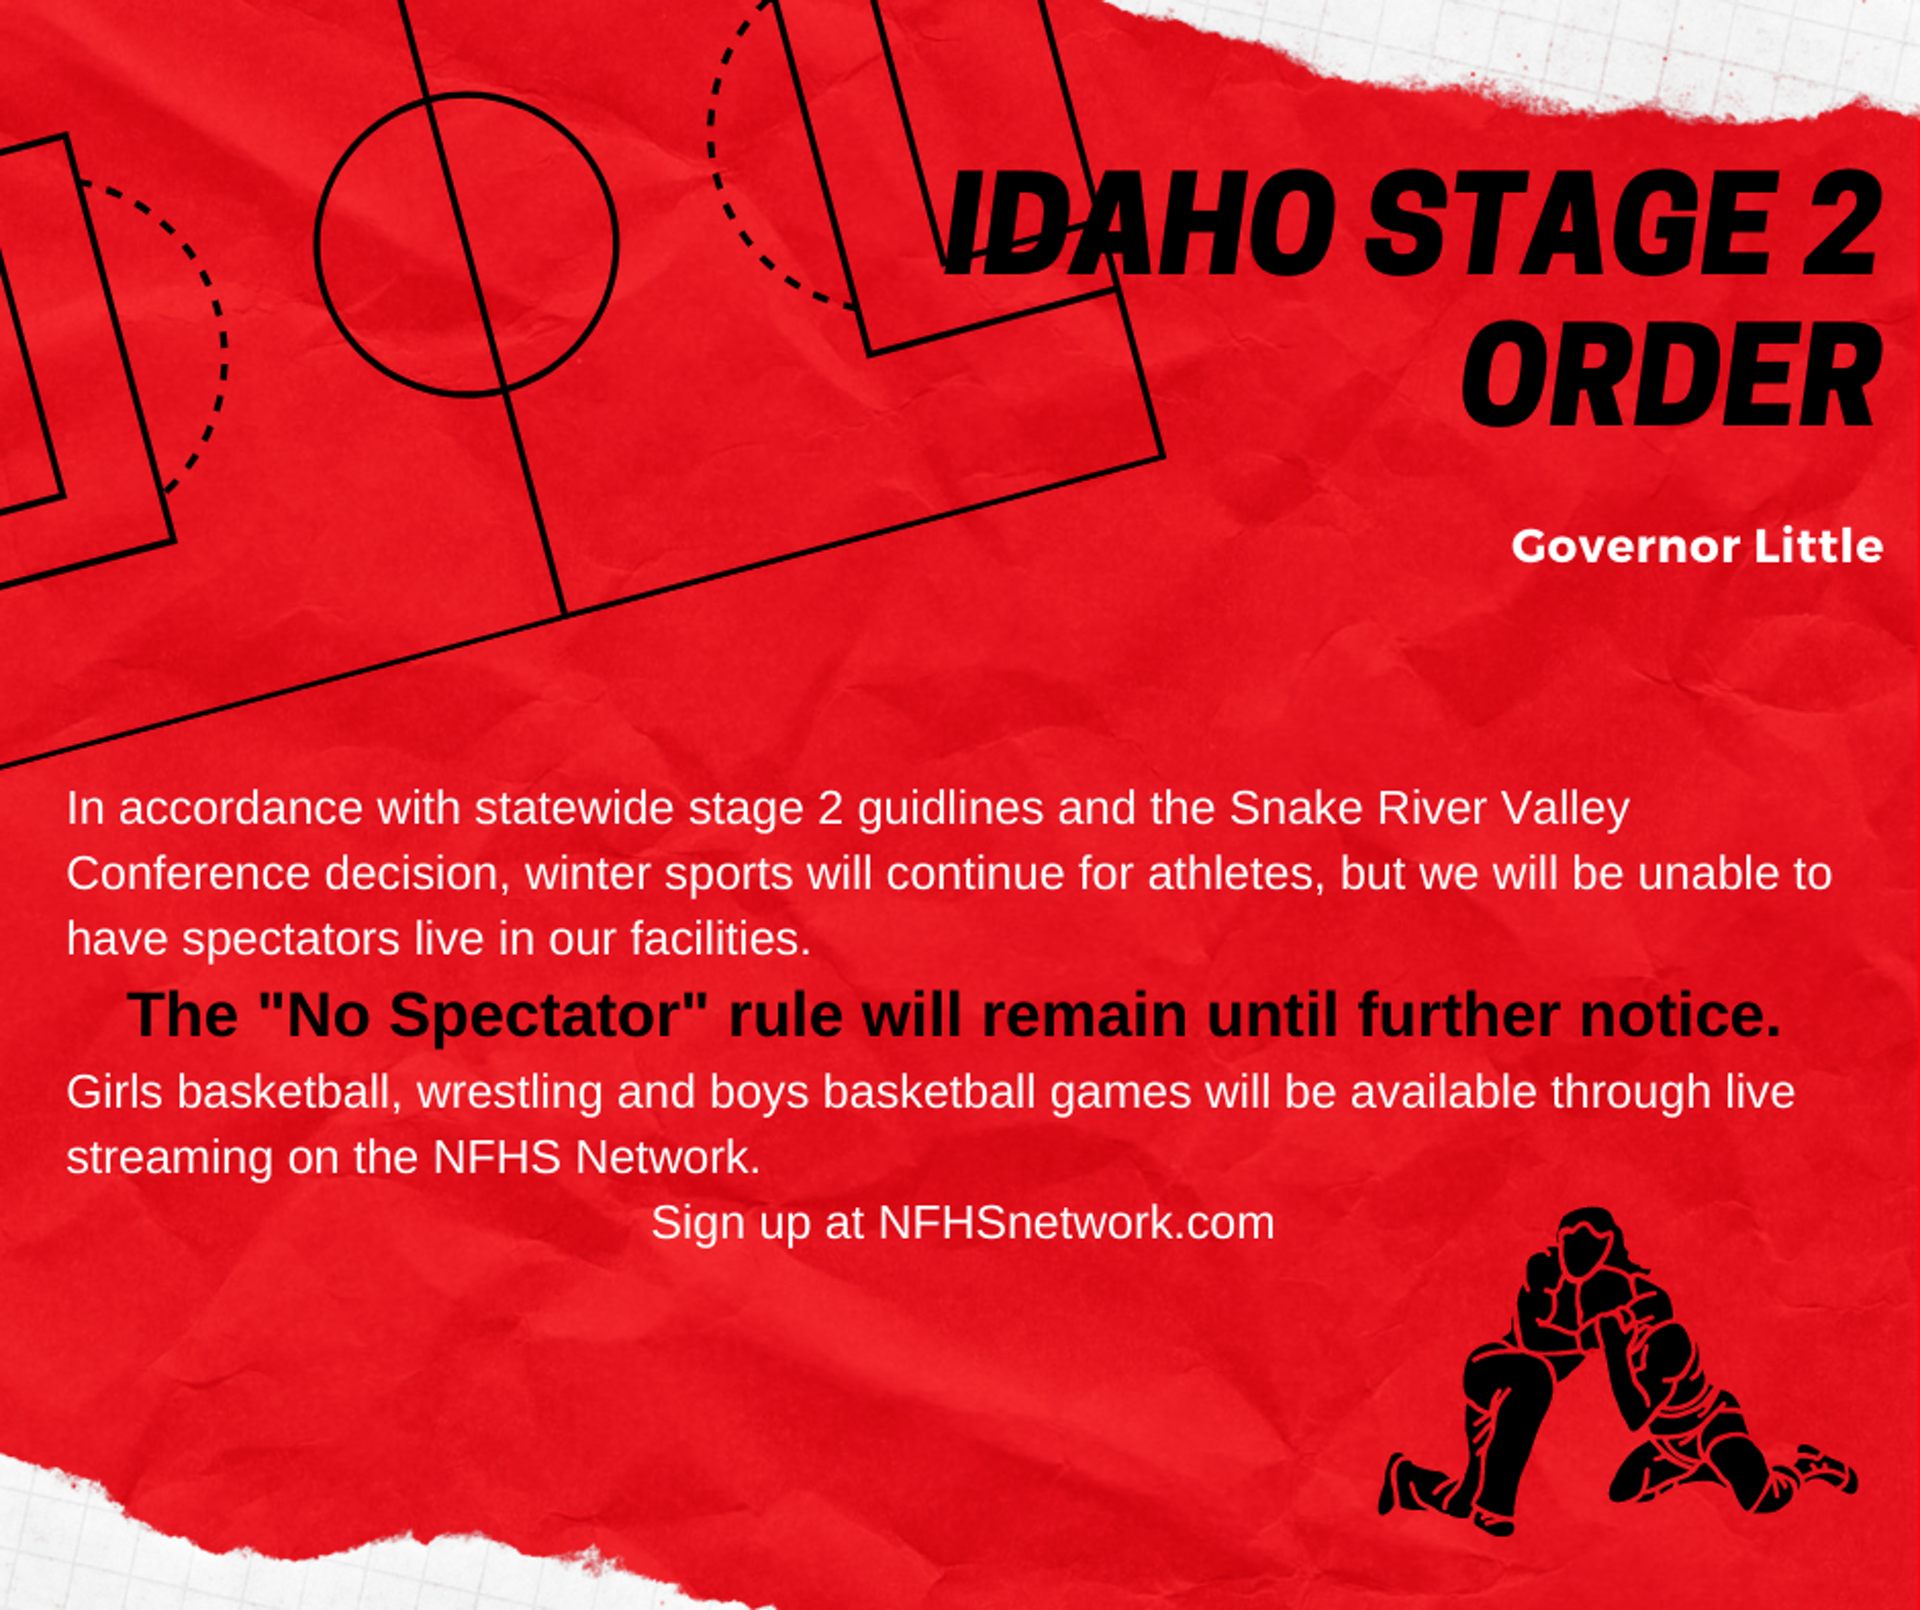 Idaho Stage 2 Order- No Spectators for athletic events.